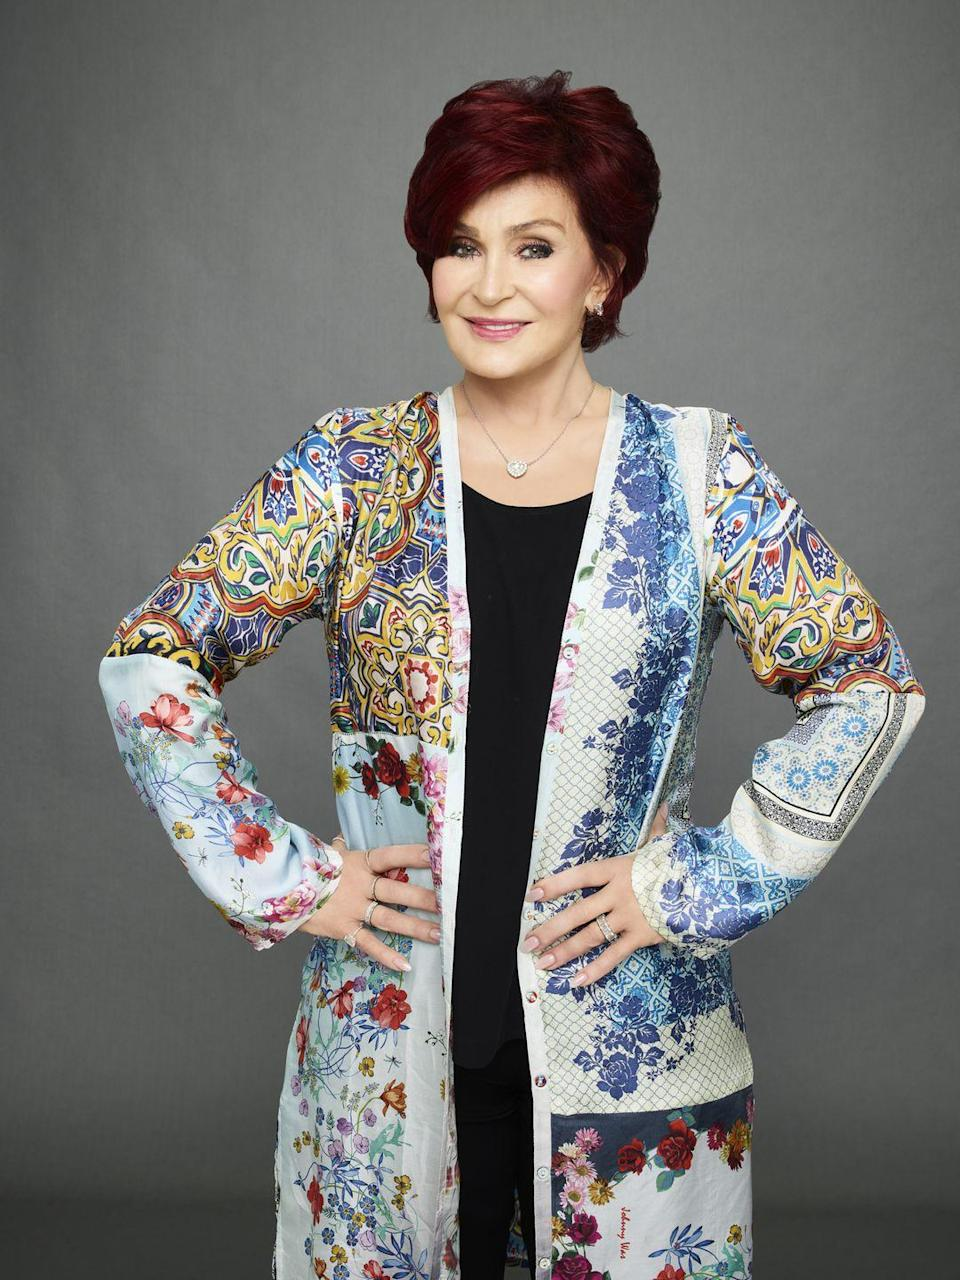 """<p>The Talk co-host Sharon Osbourne <a href=""""https://torontosun.com/2016/08/10/sharon-osbourne-on-plastic-surgery-ive-got-my-third-face/wcm/2672e8e2-a867-4435-a6de-d430b1d7e06e"""" rel=""""nofollow noopener"""" target=""""_blank"""" data-ylk=""""slk:admitted to being on her 'third face"""" class=""""link rapid-noclick-resp"""">admitted to being on her 'third face</a>' in 2016, though she hasn't always liked what she had done. 'And in a lot of shots, my face looks plastic and at certain angles, I was like, 'Oh, dear. Oh, I should never have done that. Oh, that's a bad one,' """" she said. """"So I'm like, 'No more. No more abuse. '</p>"""